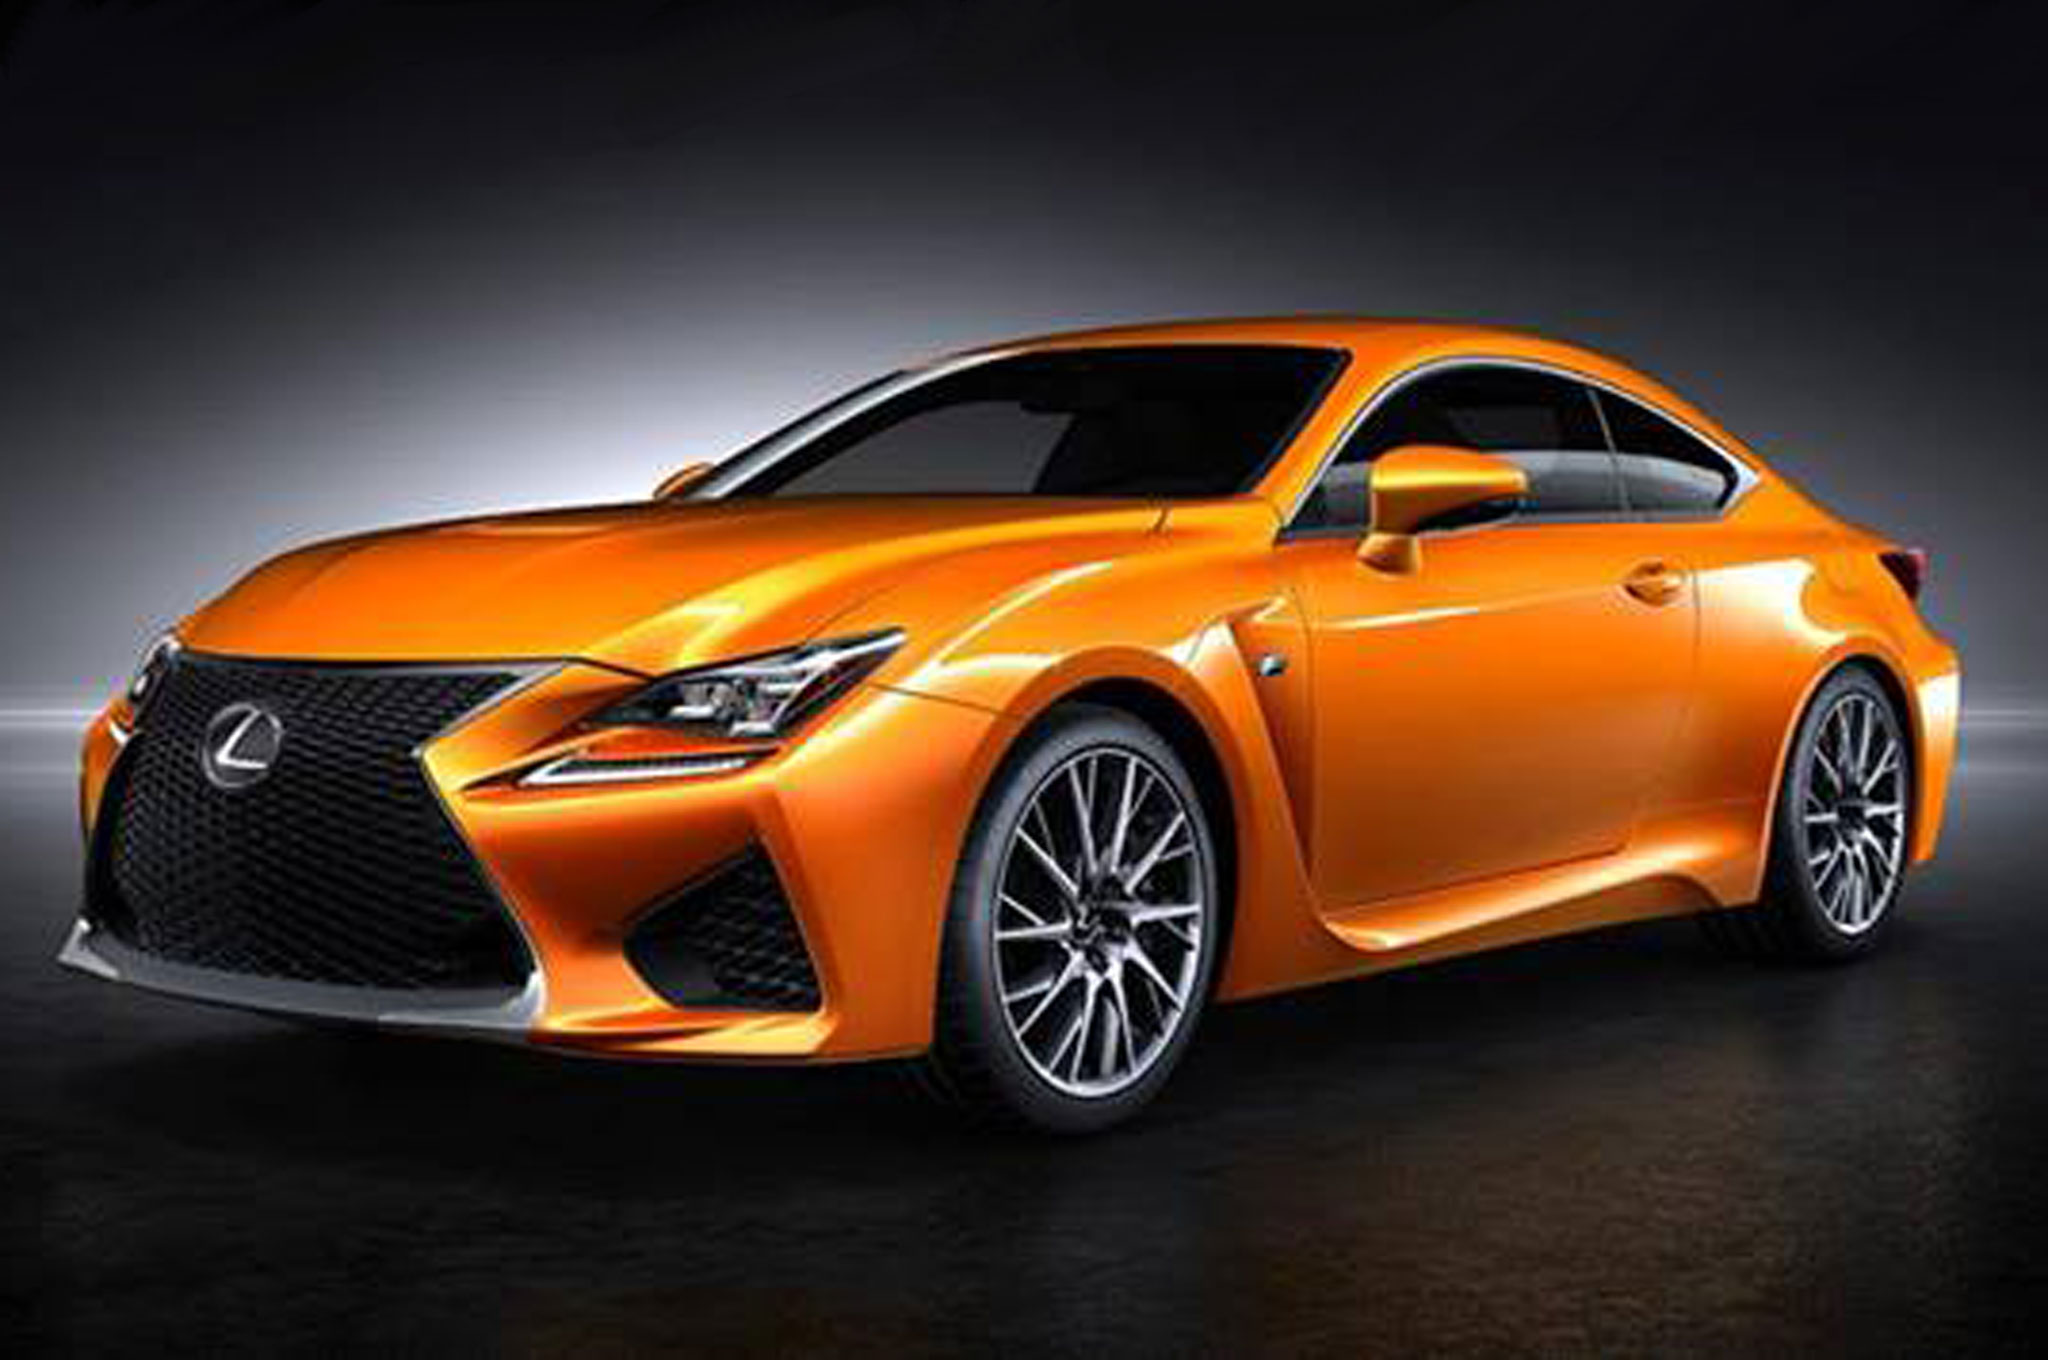 2015 Lexus RC F Gets New Paint Color - What Would you Name It?